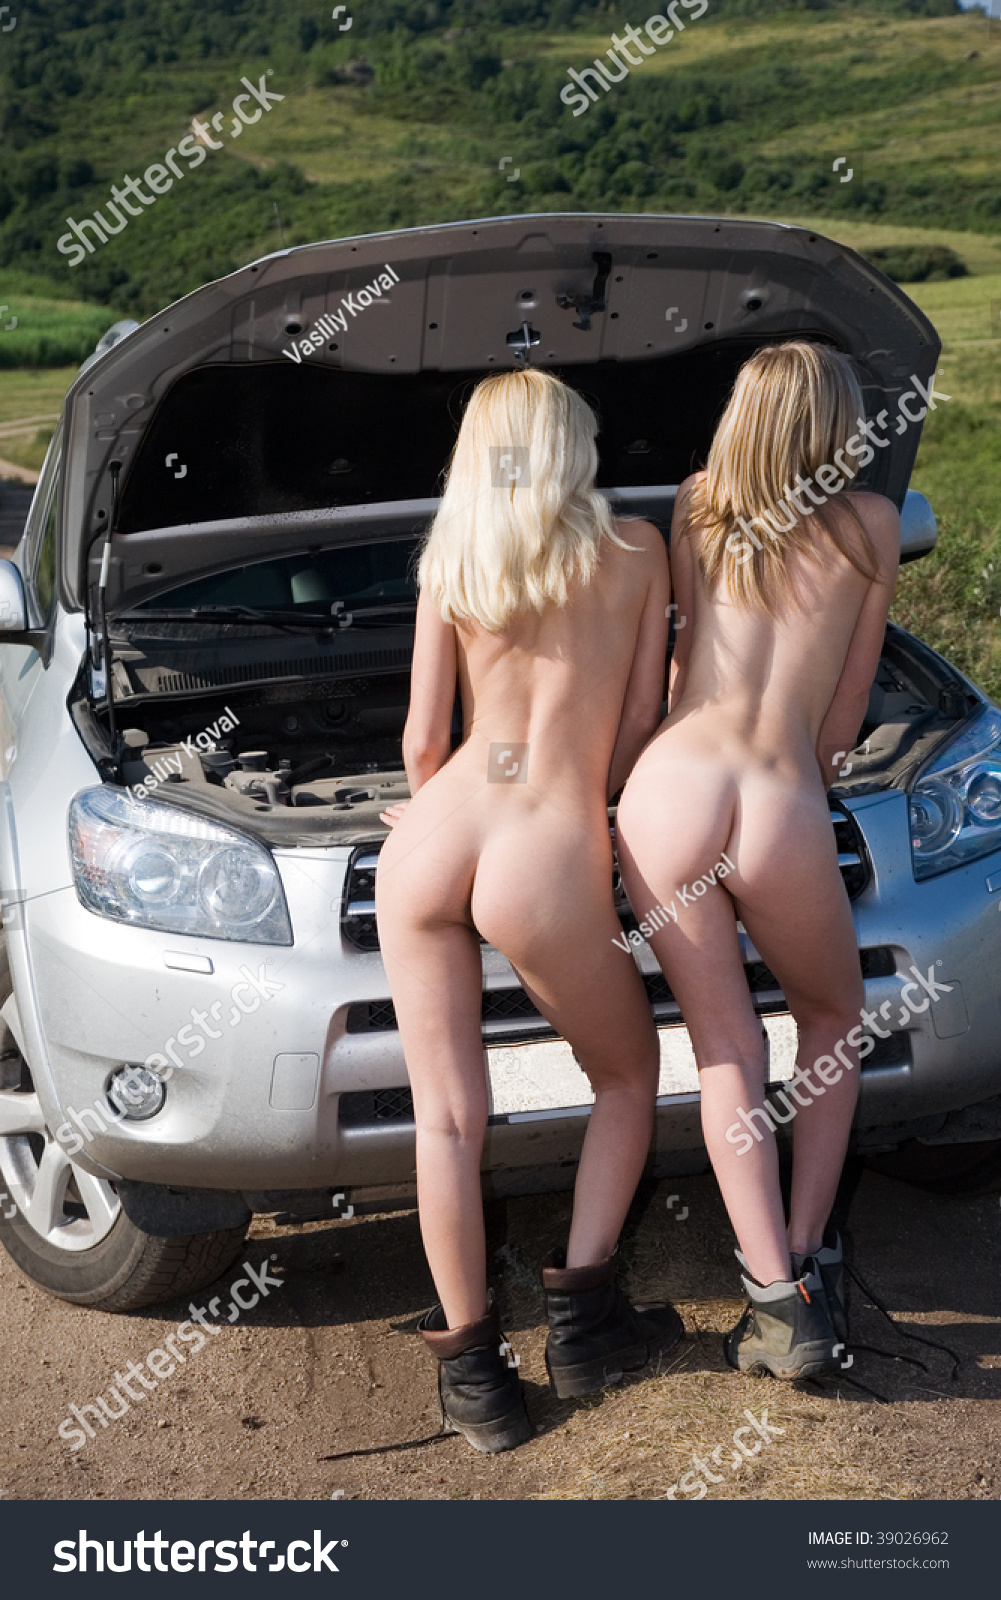 Two Young Nude Girls Broken Car Stock Photo 39026962 -1296